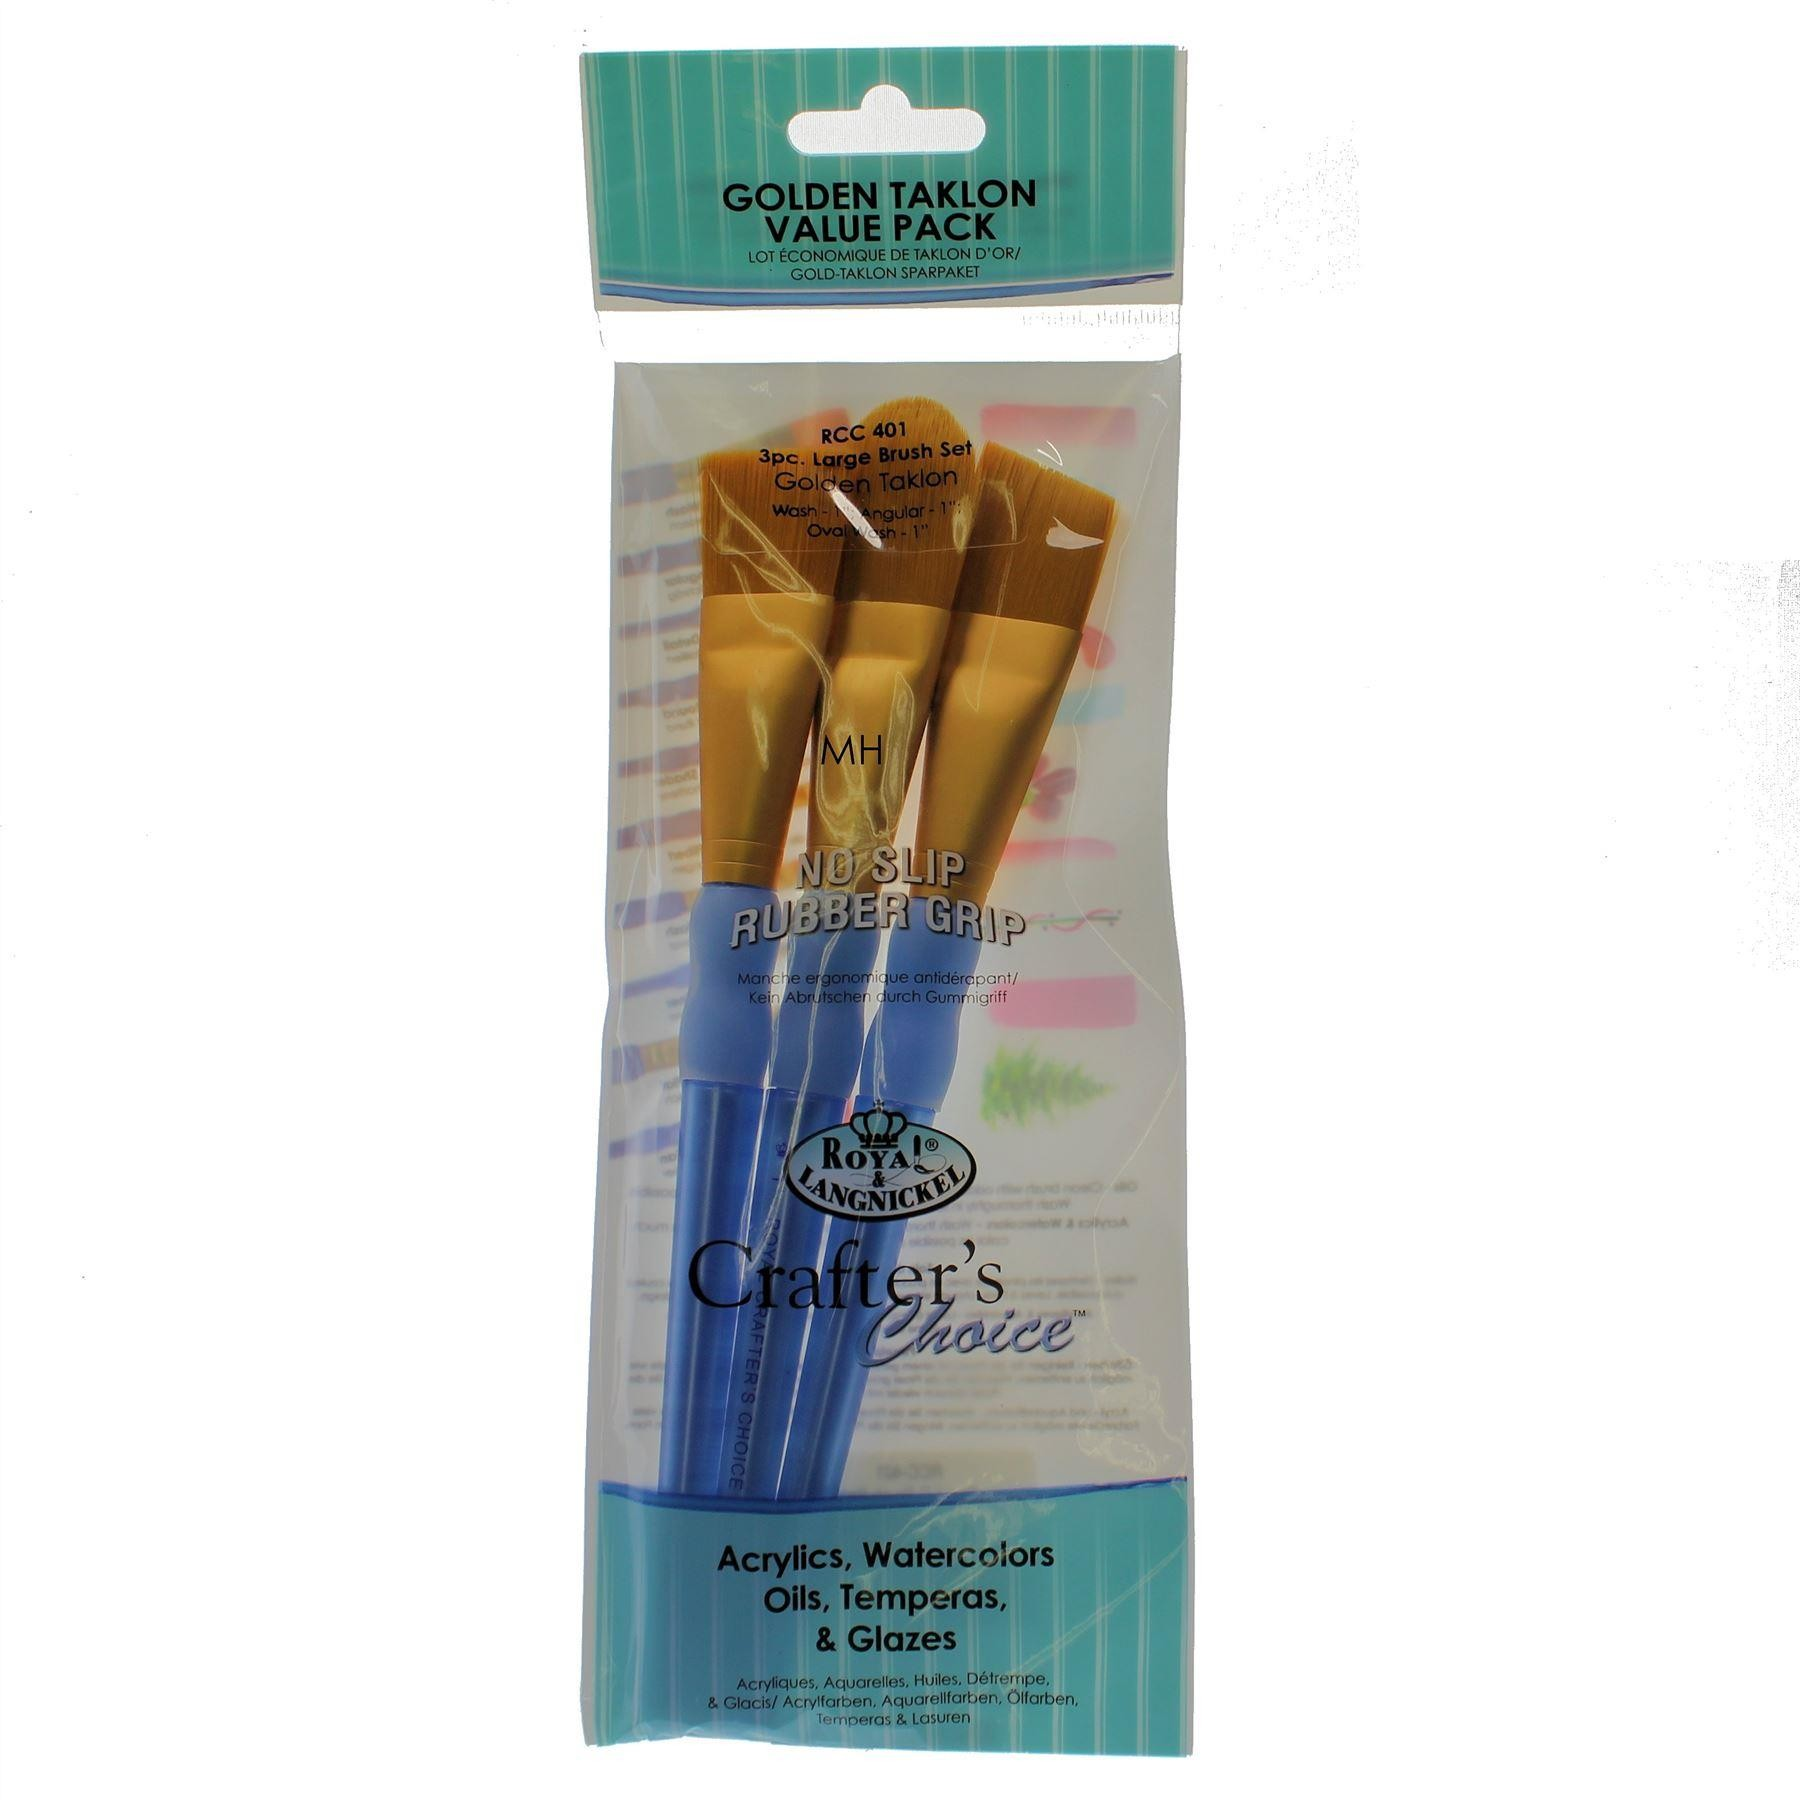 Royal & Langnickel Crafters' Choice, Artists Golden Taklon Paint Brush Set - RCC-400 Series